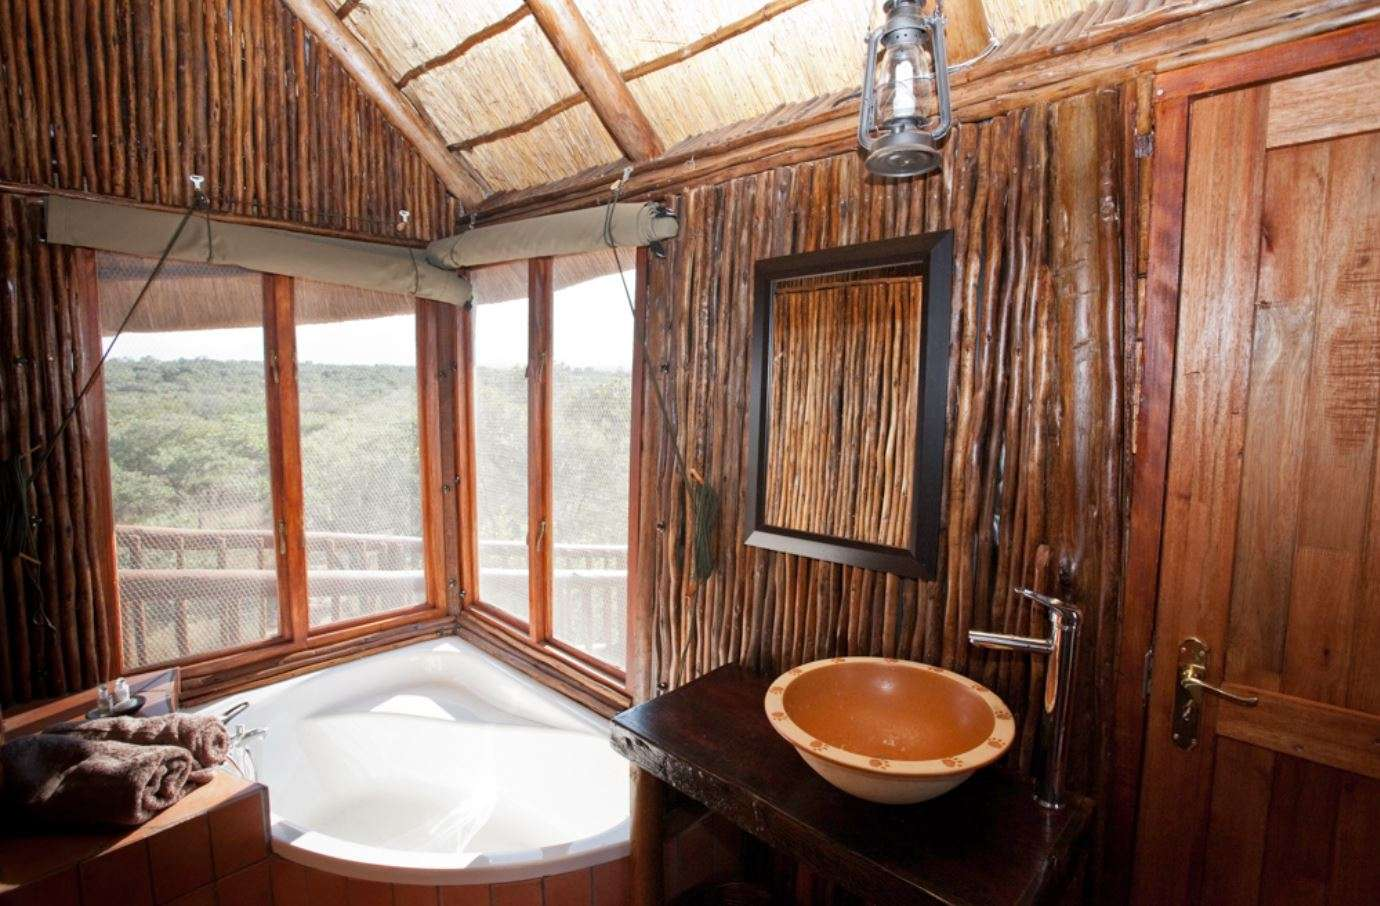 pictures of bona ntaba tree house lodge